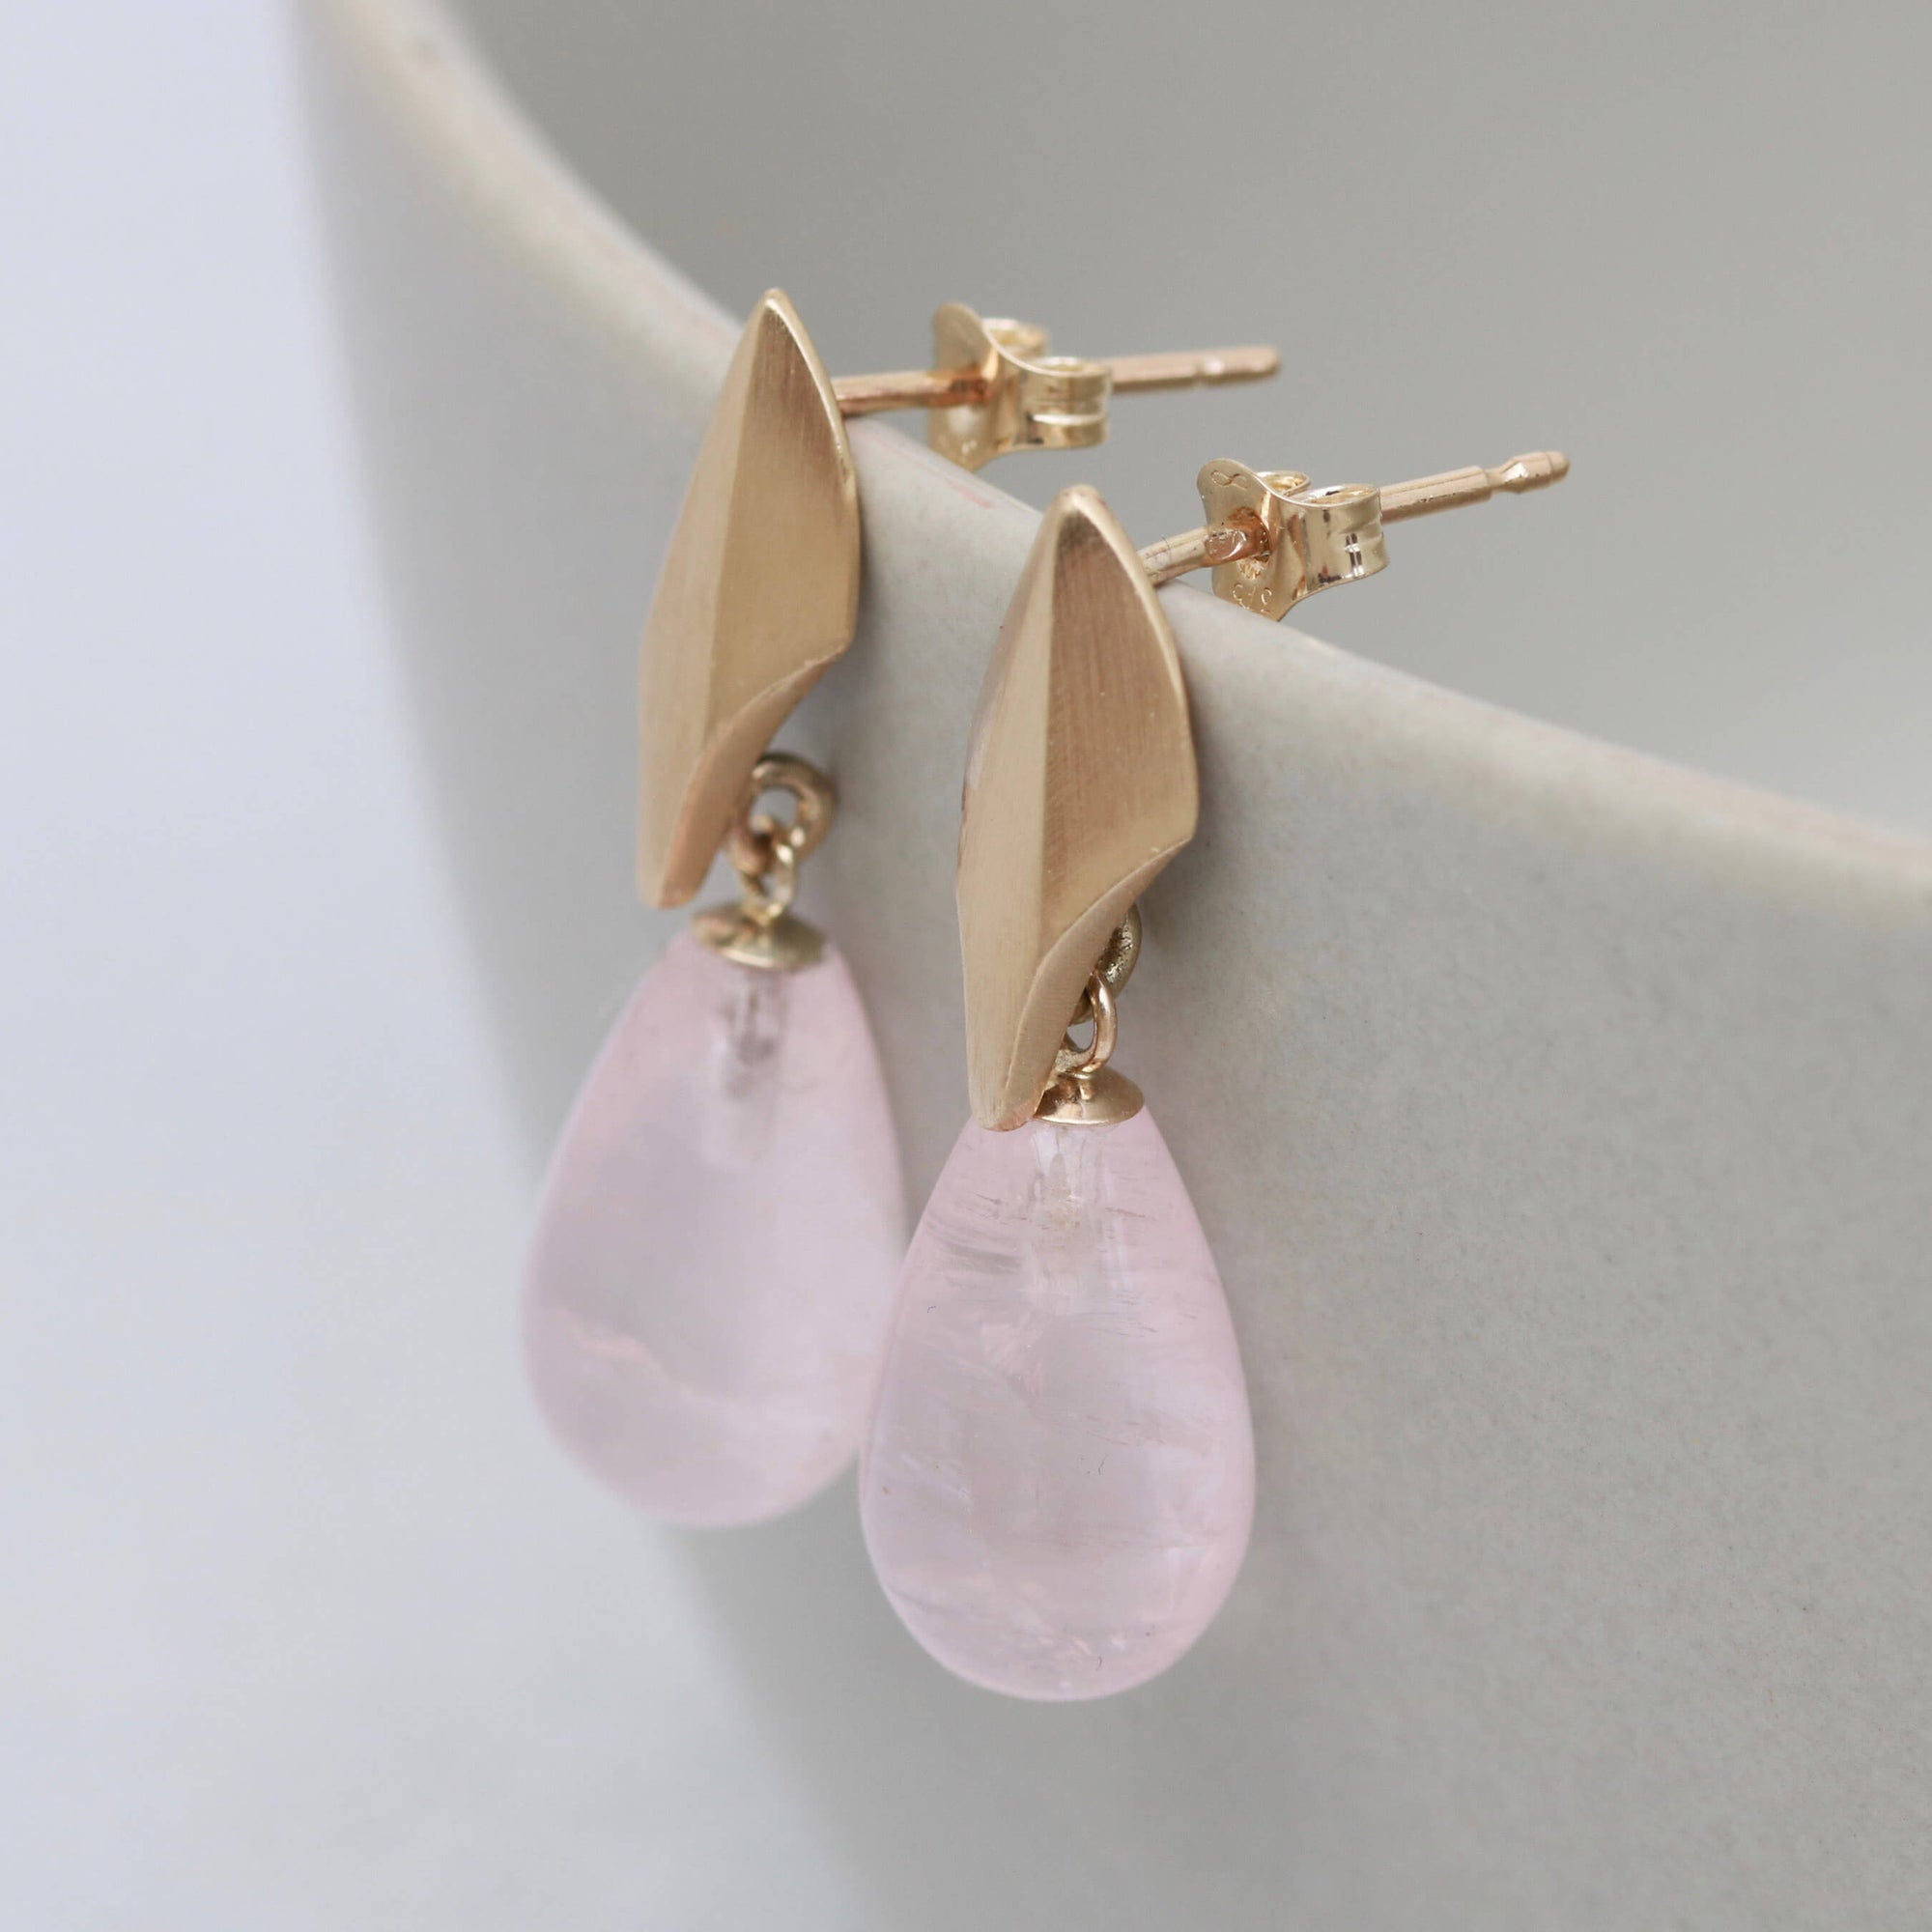 9ct Gold Deco Dropper Earrings with Rose Gold